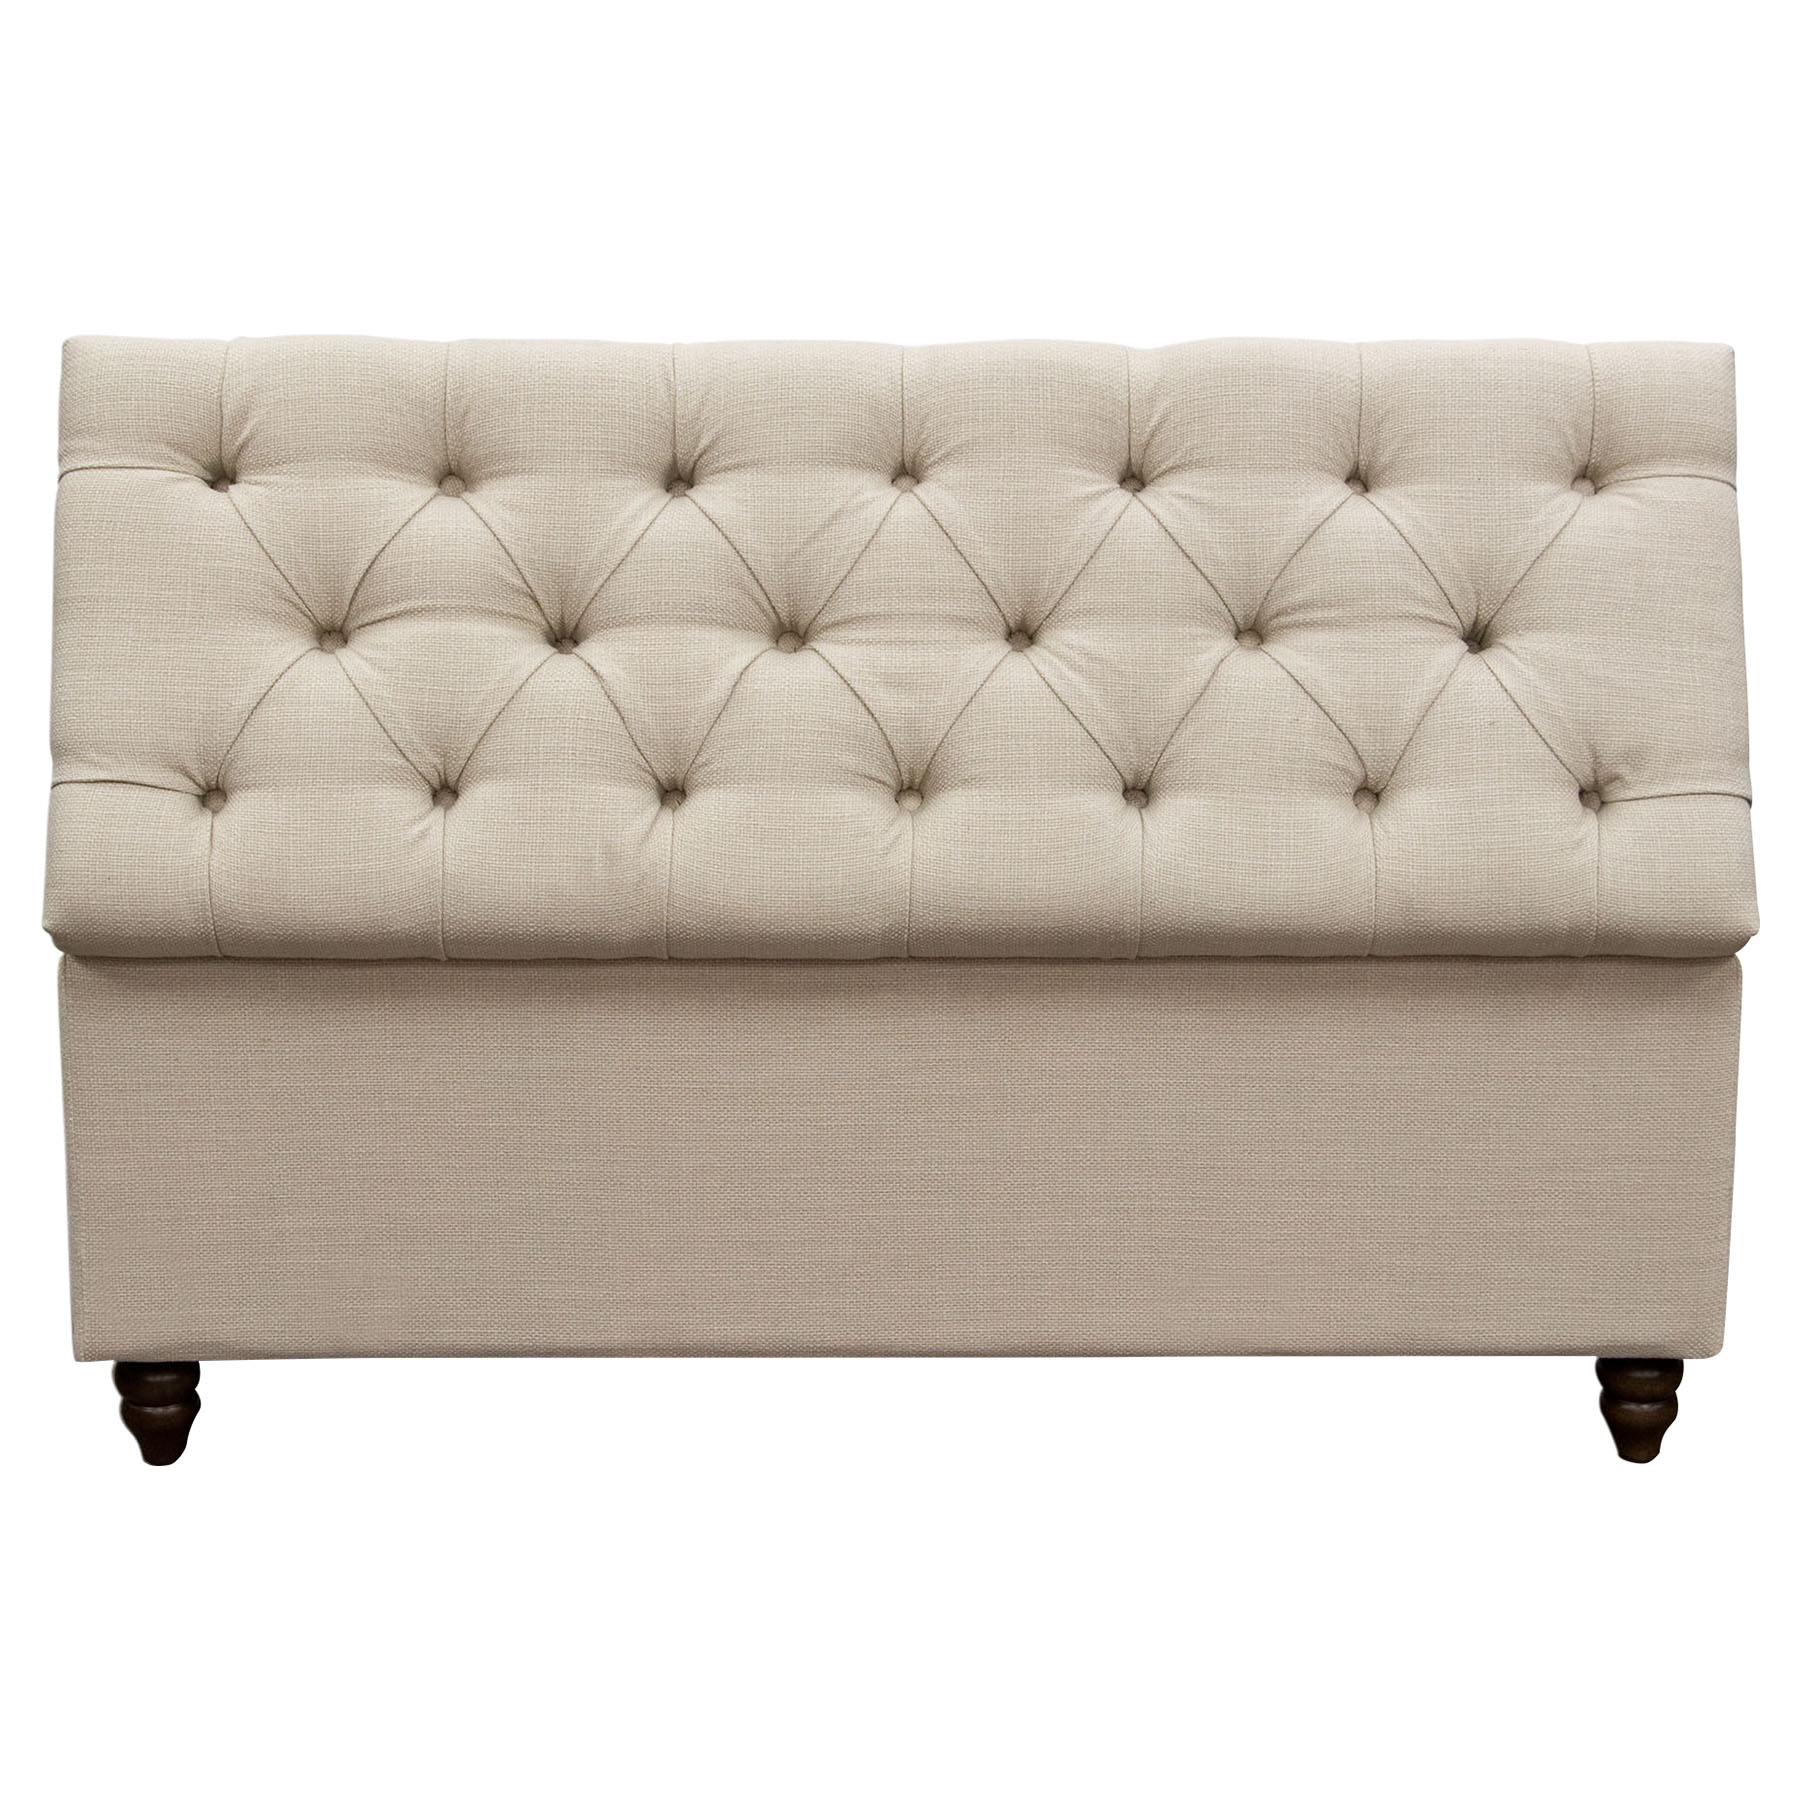 diamond sofa park ave king bed in desert sand foldable lift top storage trunk tufted